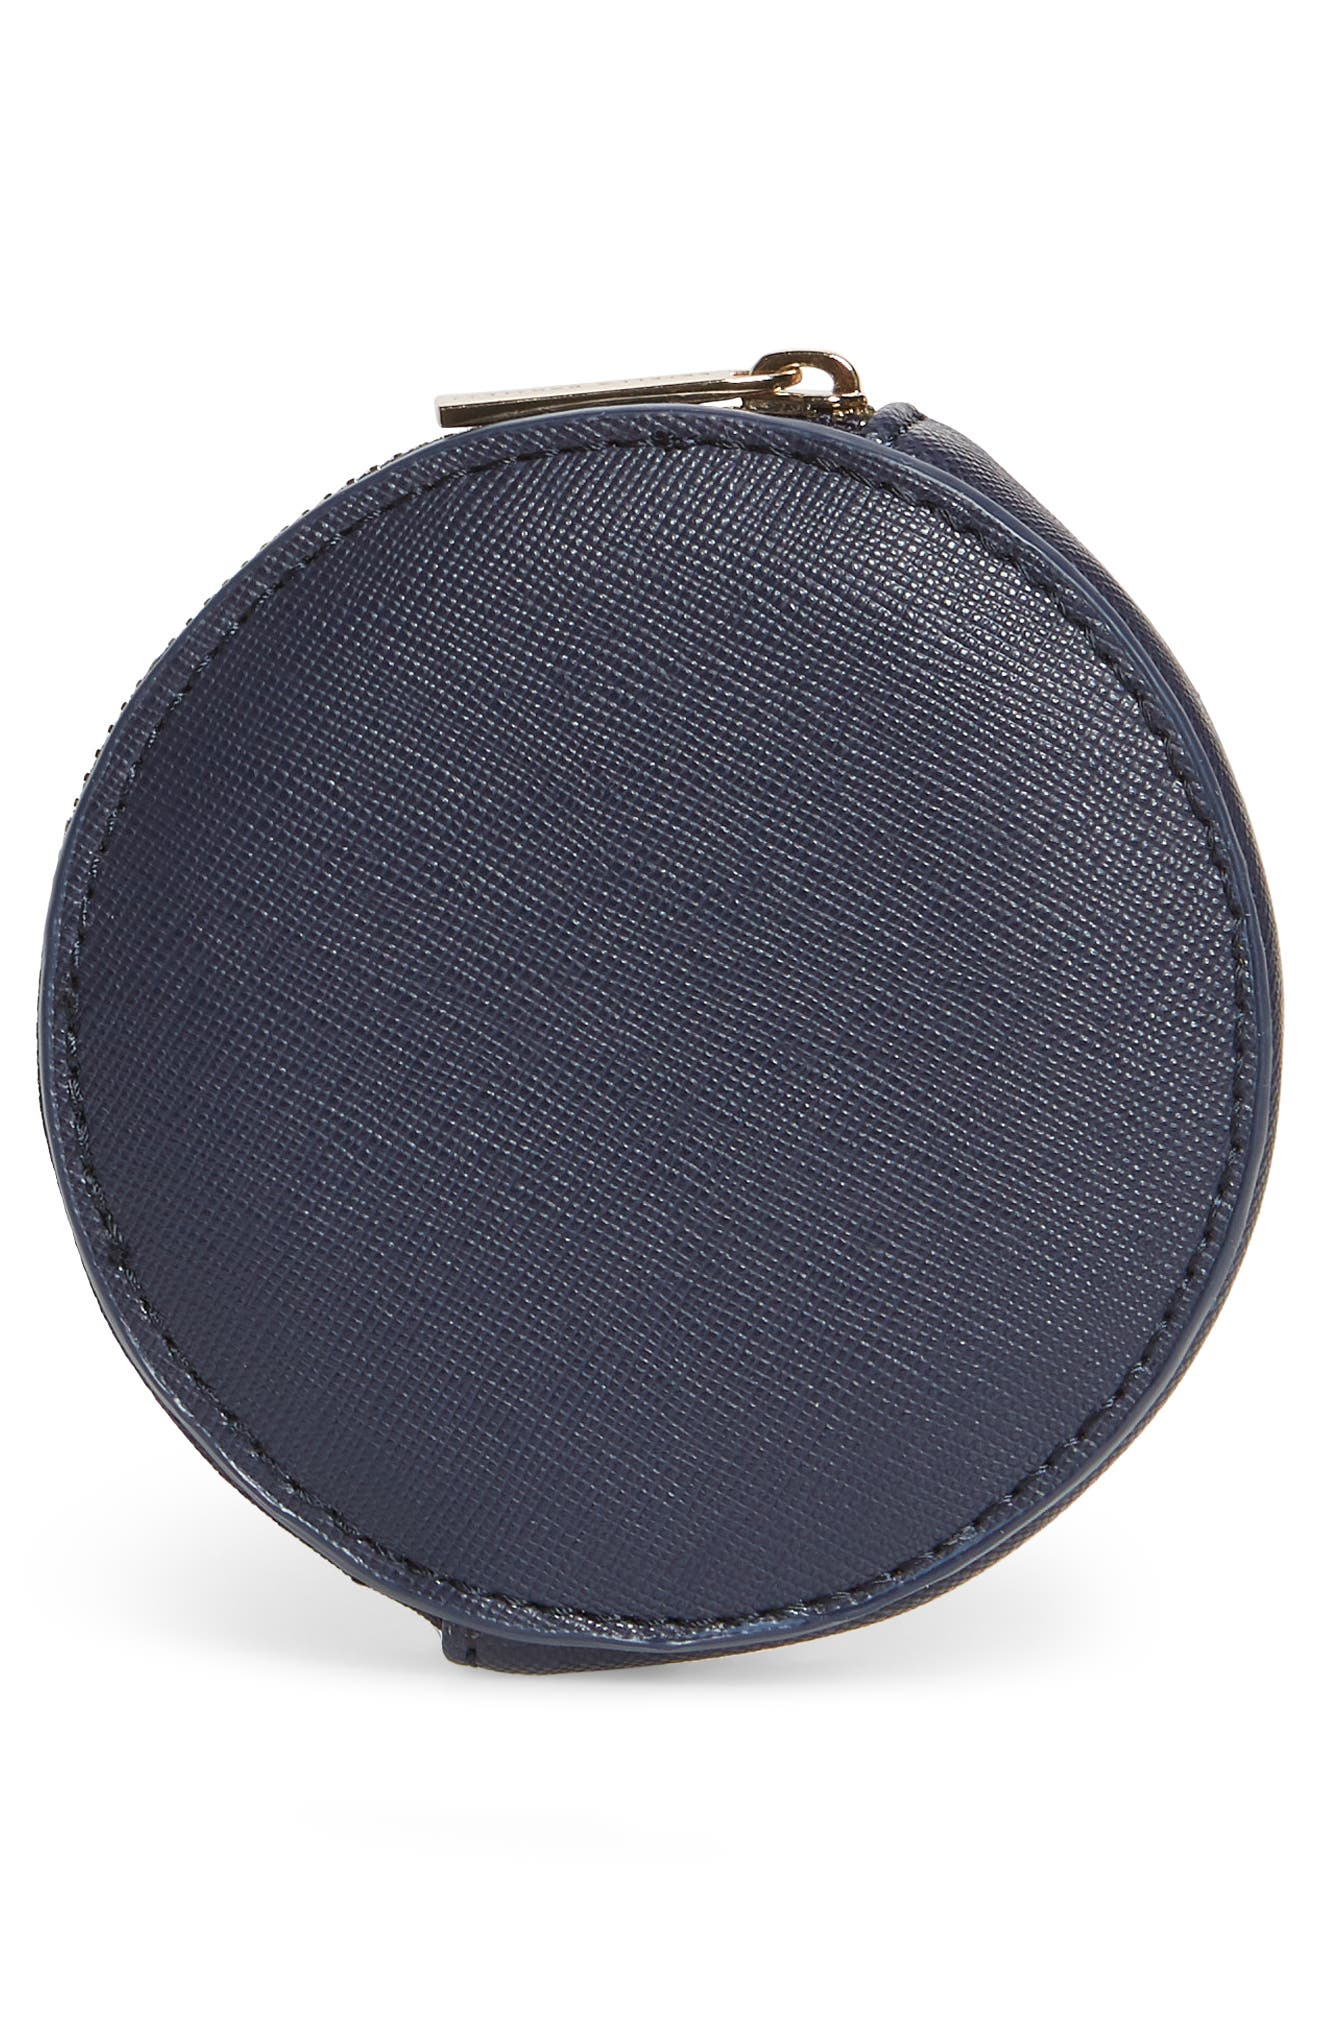 Circle Coin Pouch,                             Alternate thumbnail 4, color,                             NAVY - MAKE IT HAPPEN